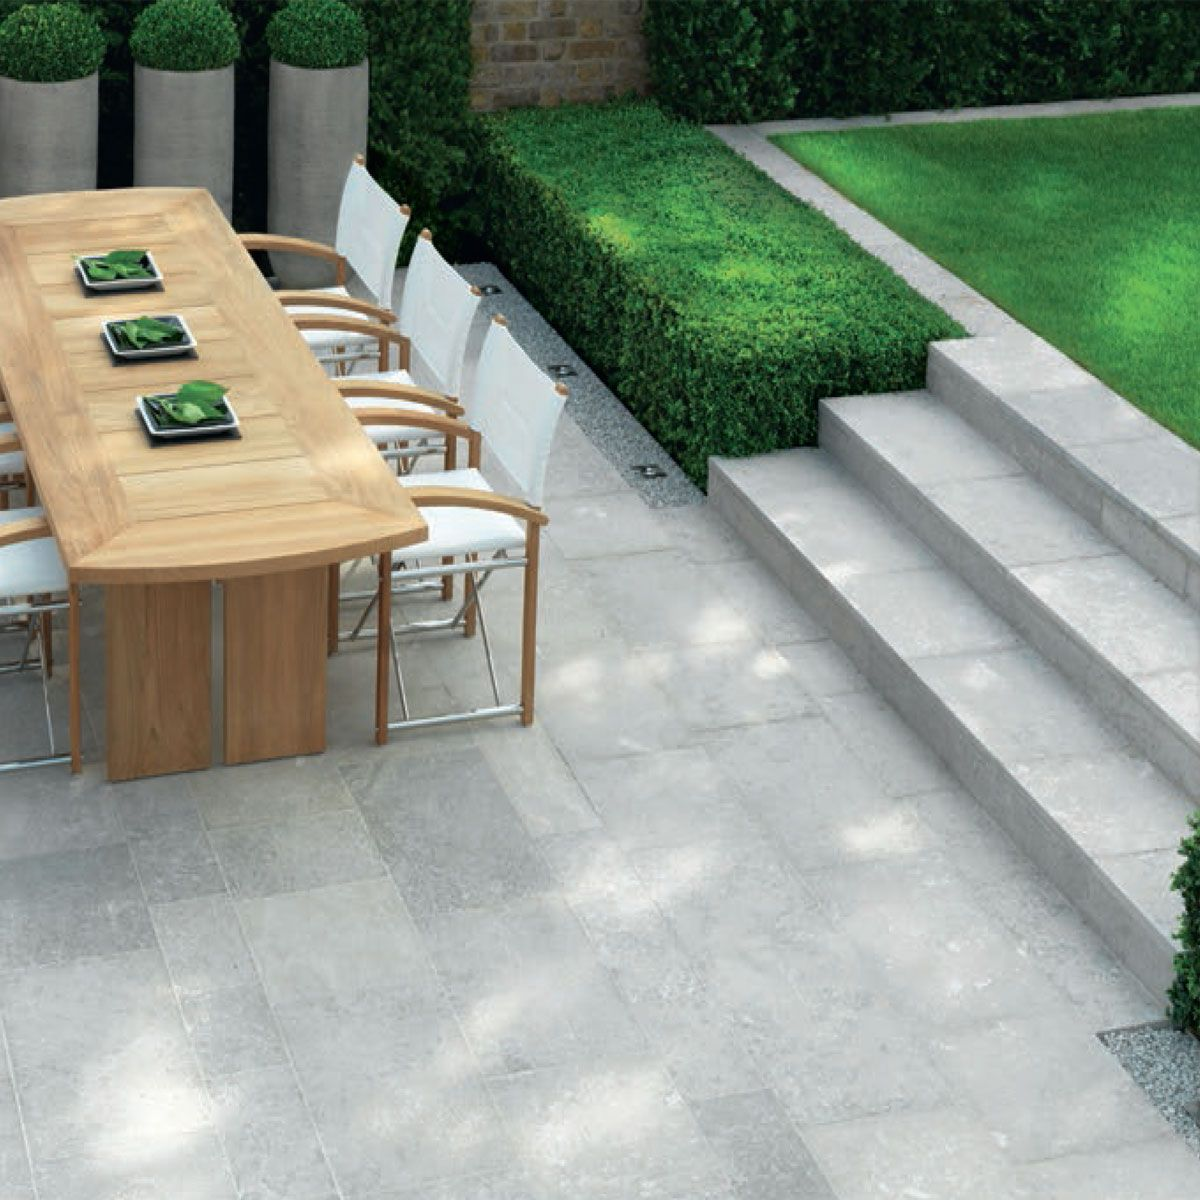 Patio Ideas With Existing Concrete Slab: Single White Paving Slabs €�